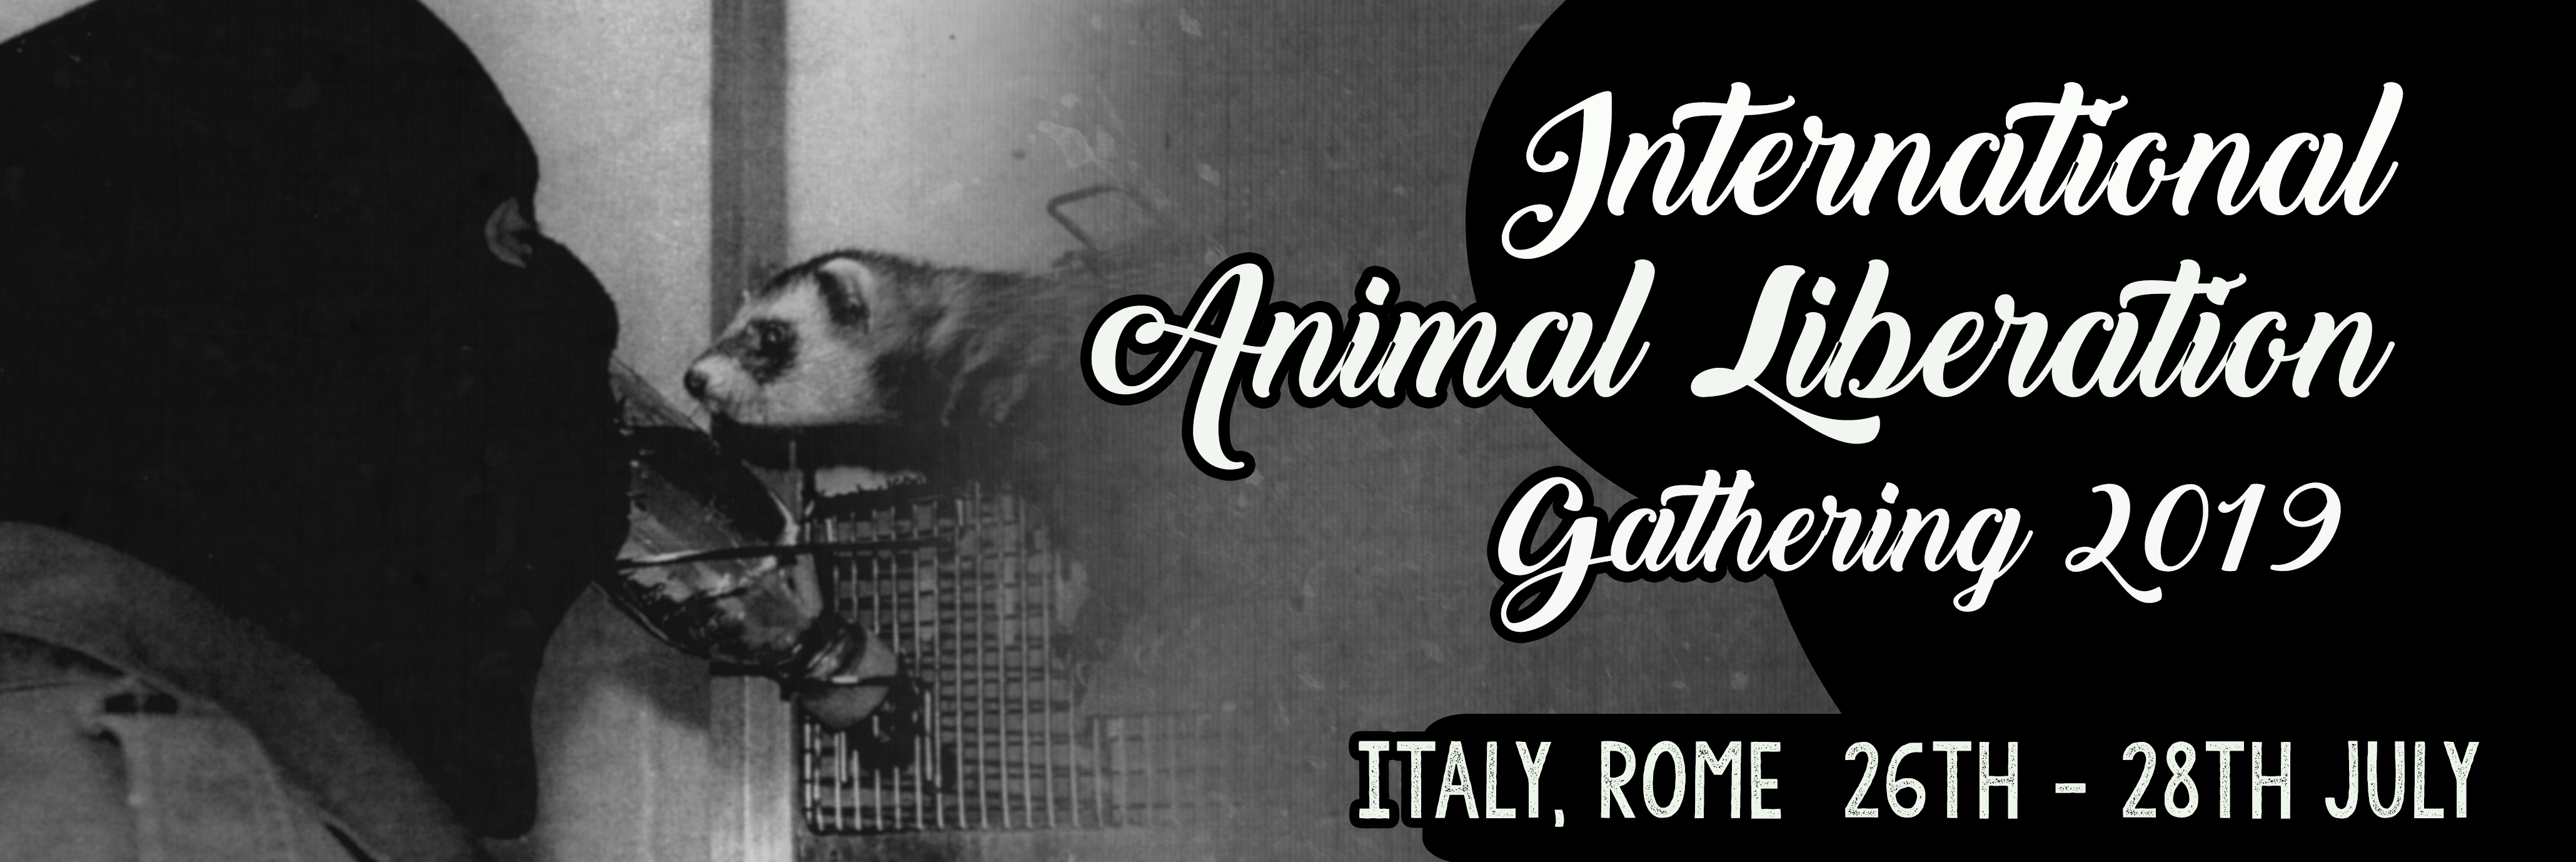 https://animalgathering2019.noblogs.org/files/2019/04/testheader3.jpg